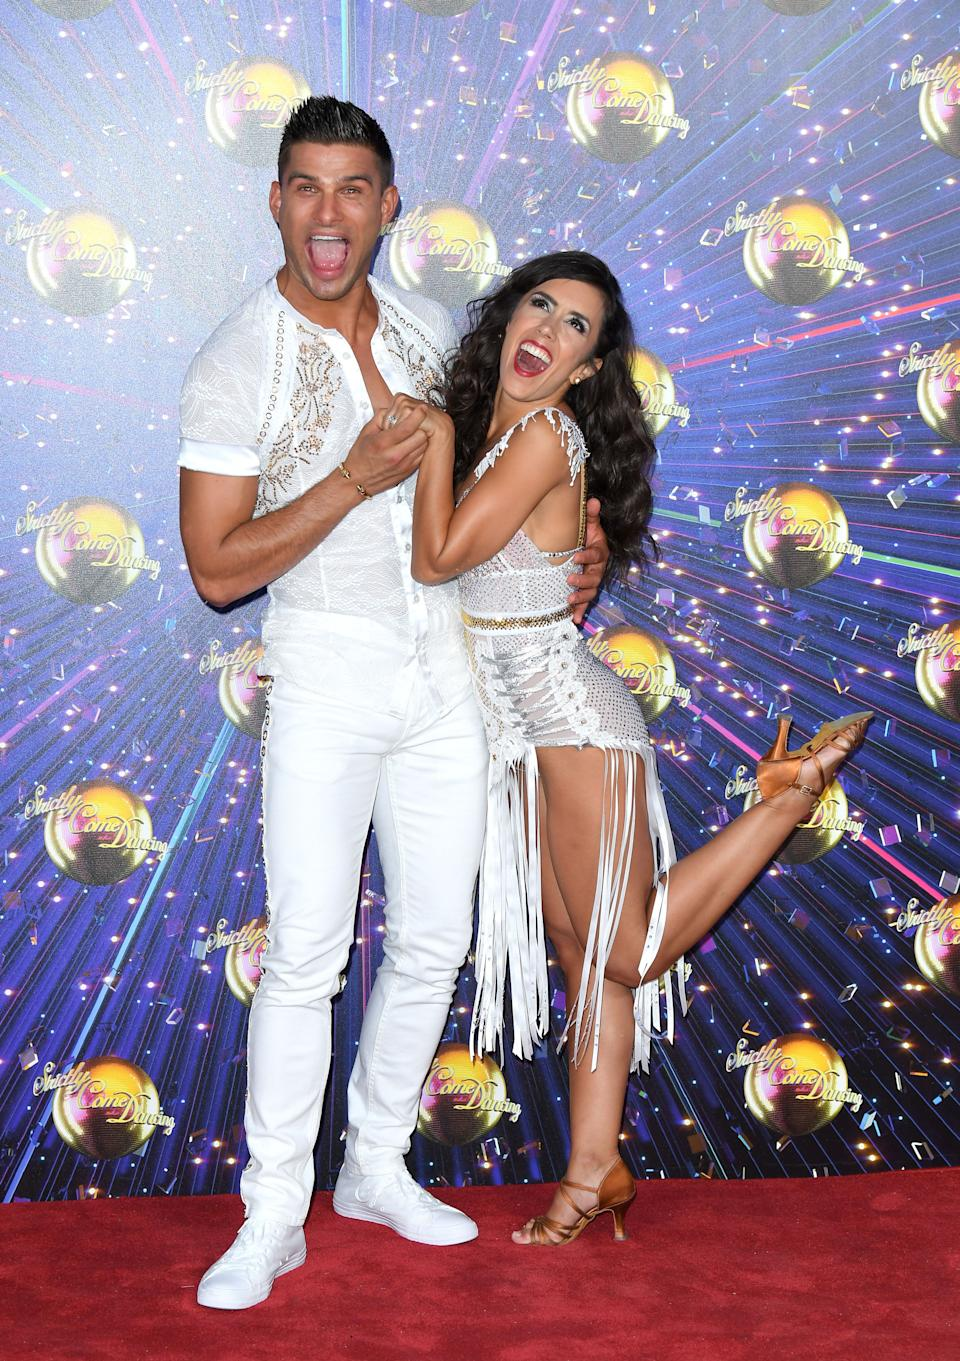 """LONDON, ENGLAND - AUGUST 26: Aljaz Skorjanec and Janette Manrara  attend the """"Strictly Come Dancing"""" launch show red carpet arrivals at Television Centre on August 26, 2019 in London, England. (Photo by Karwai Tang/WireImage)"""